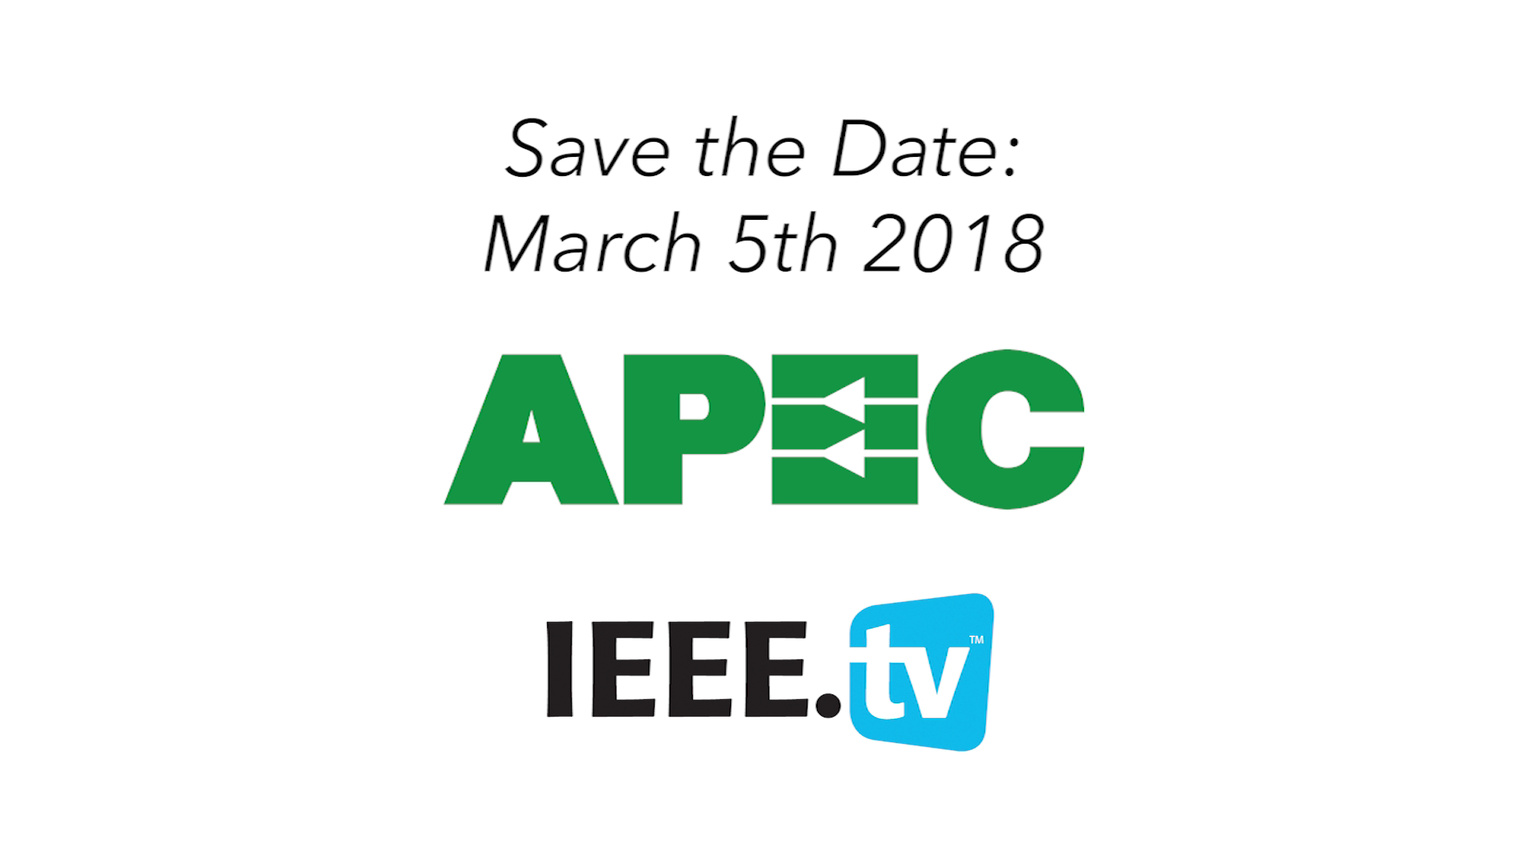 Save the Date: APEC Live on IEEE.tv! - March 5th 2018